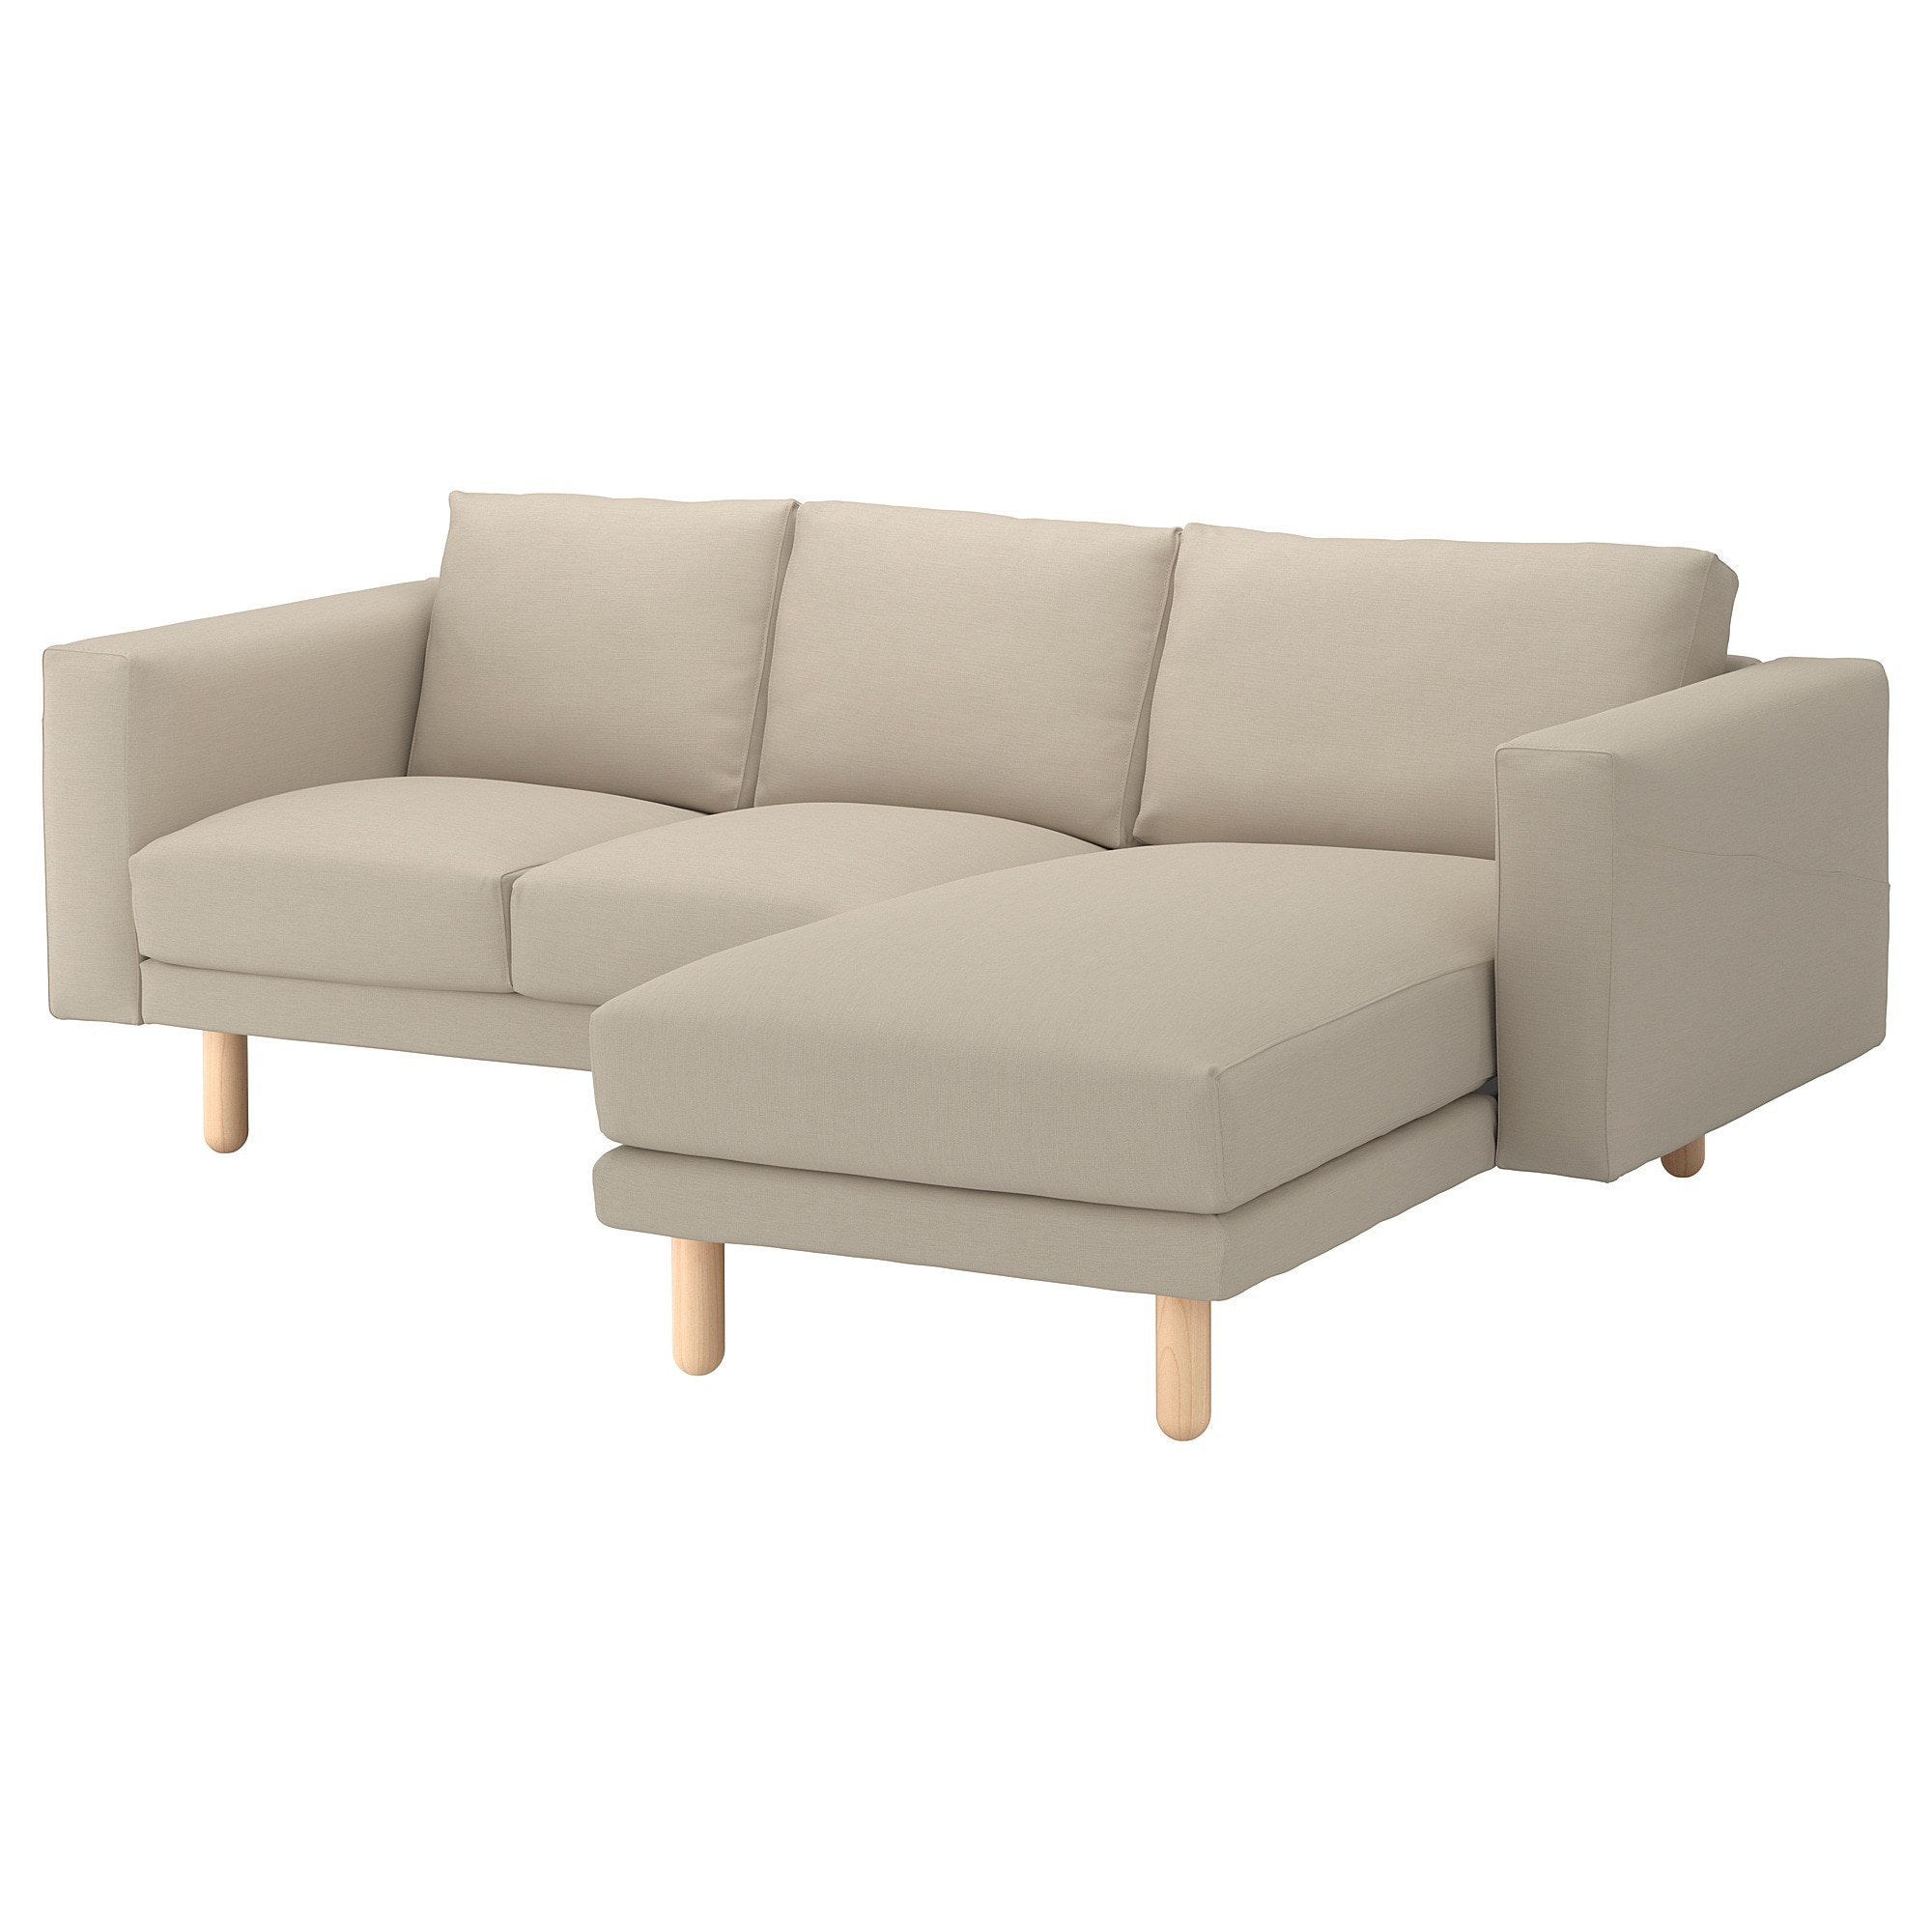 NORSBORG sectional 3-seat Edum beige birch Width 91   Height  sc 1 st  Ikea : ikea sectional sofa - Sectionals, Sofas & Couches